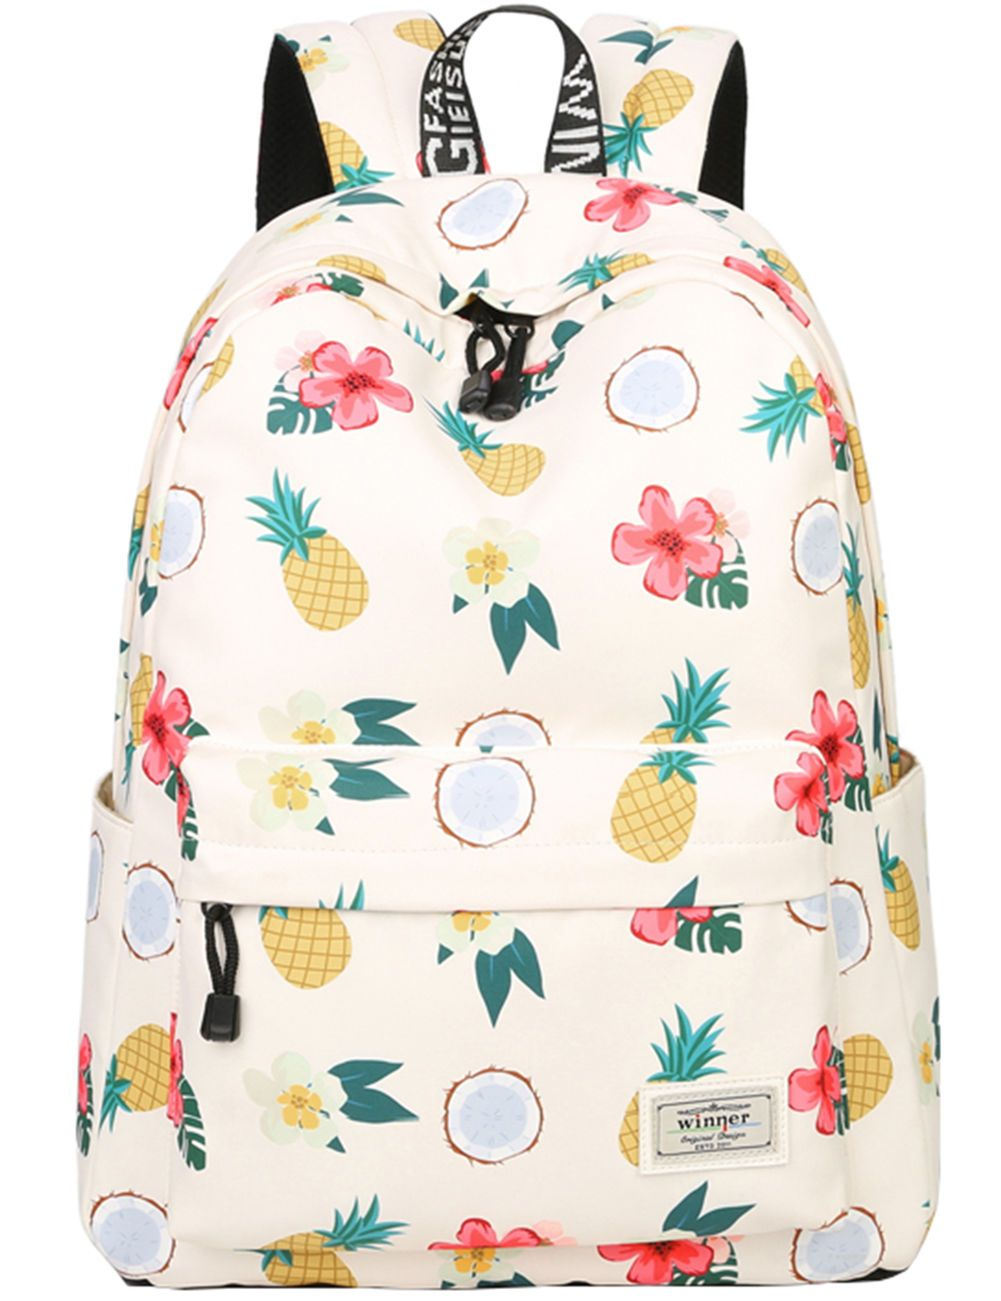 dbafb470b723 Details about School Bookbags for Girls, Cute Pineapple Backpack ...